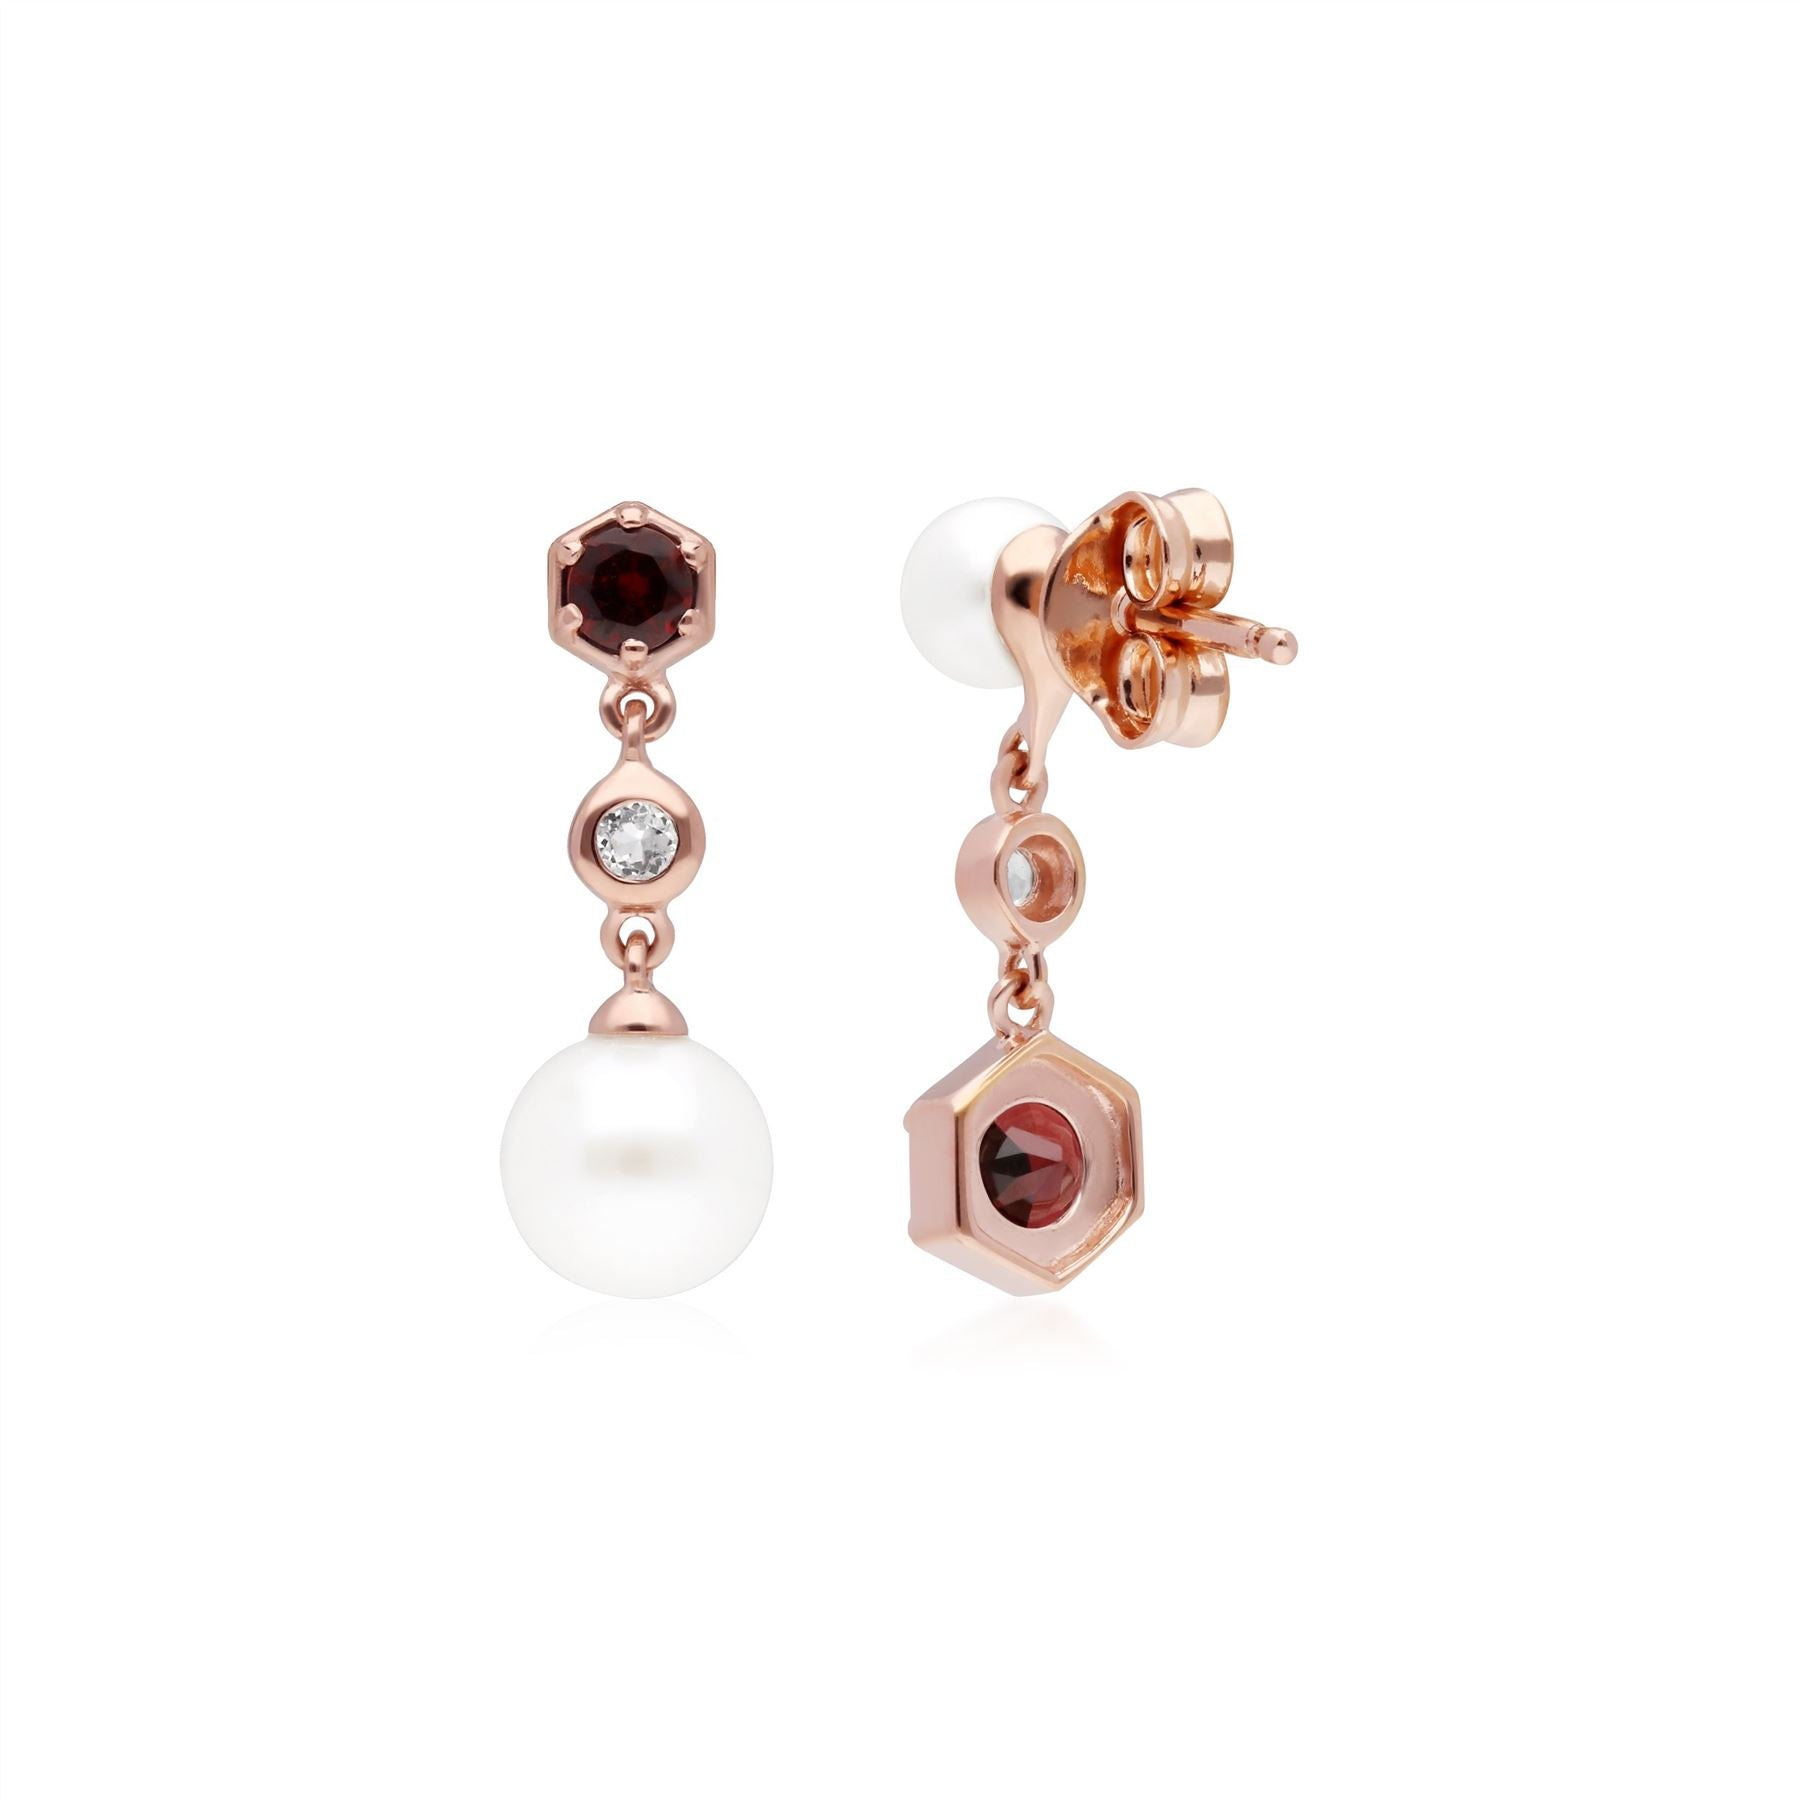 White Pearl /& Ruby Mismatched Drop Earrings in Rose Gold Plated Sterling Silver